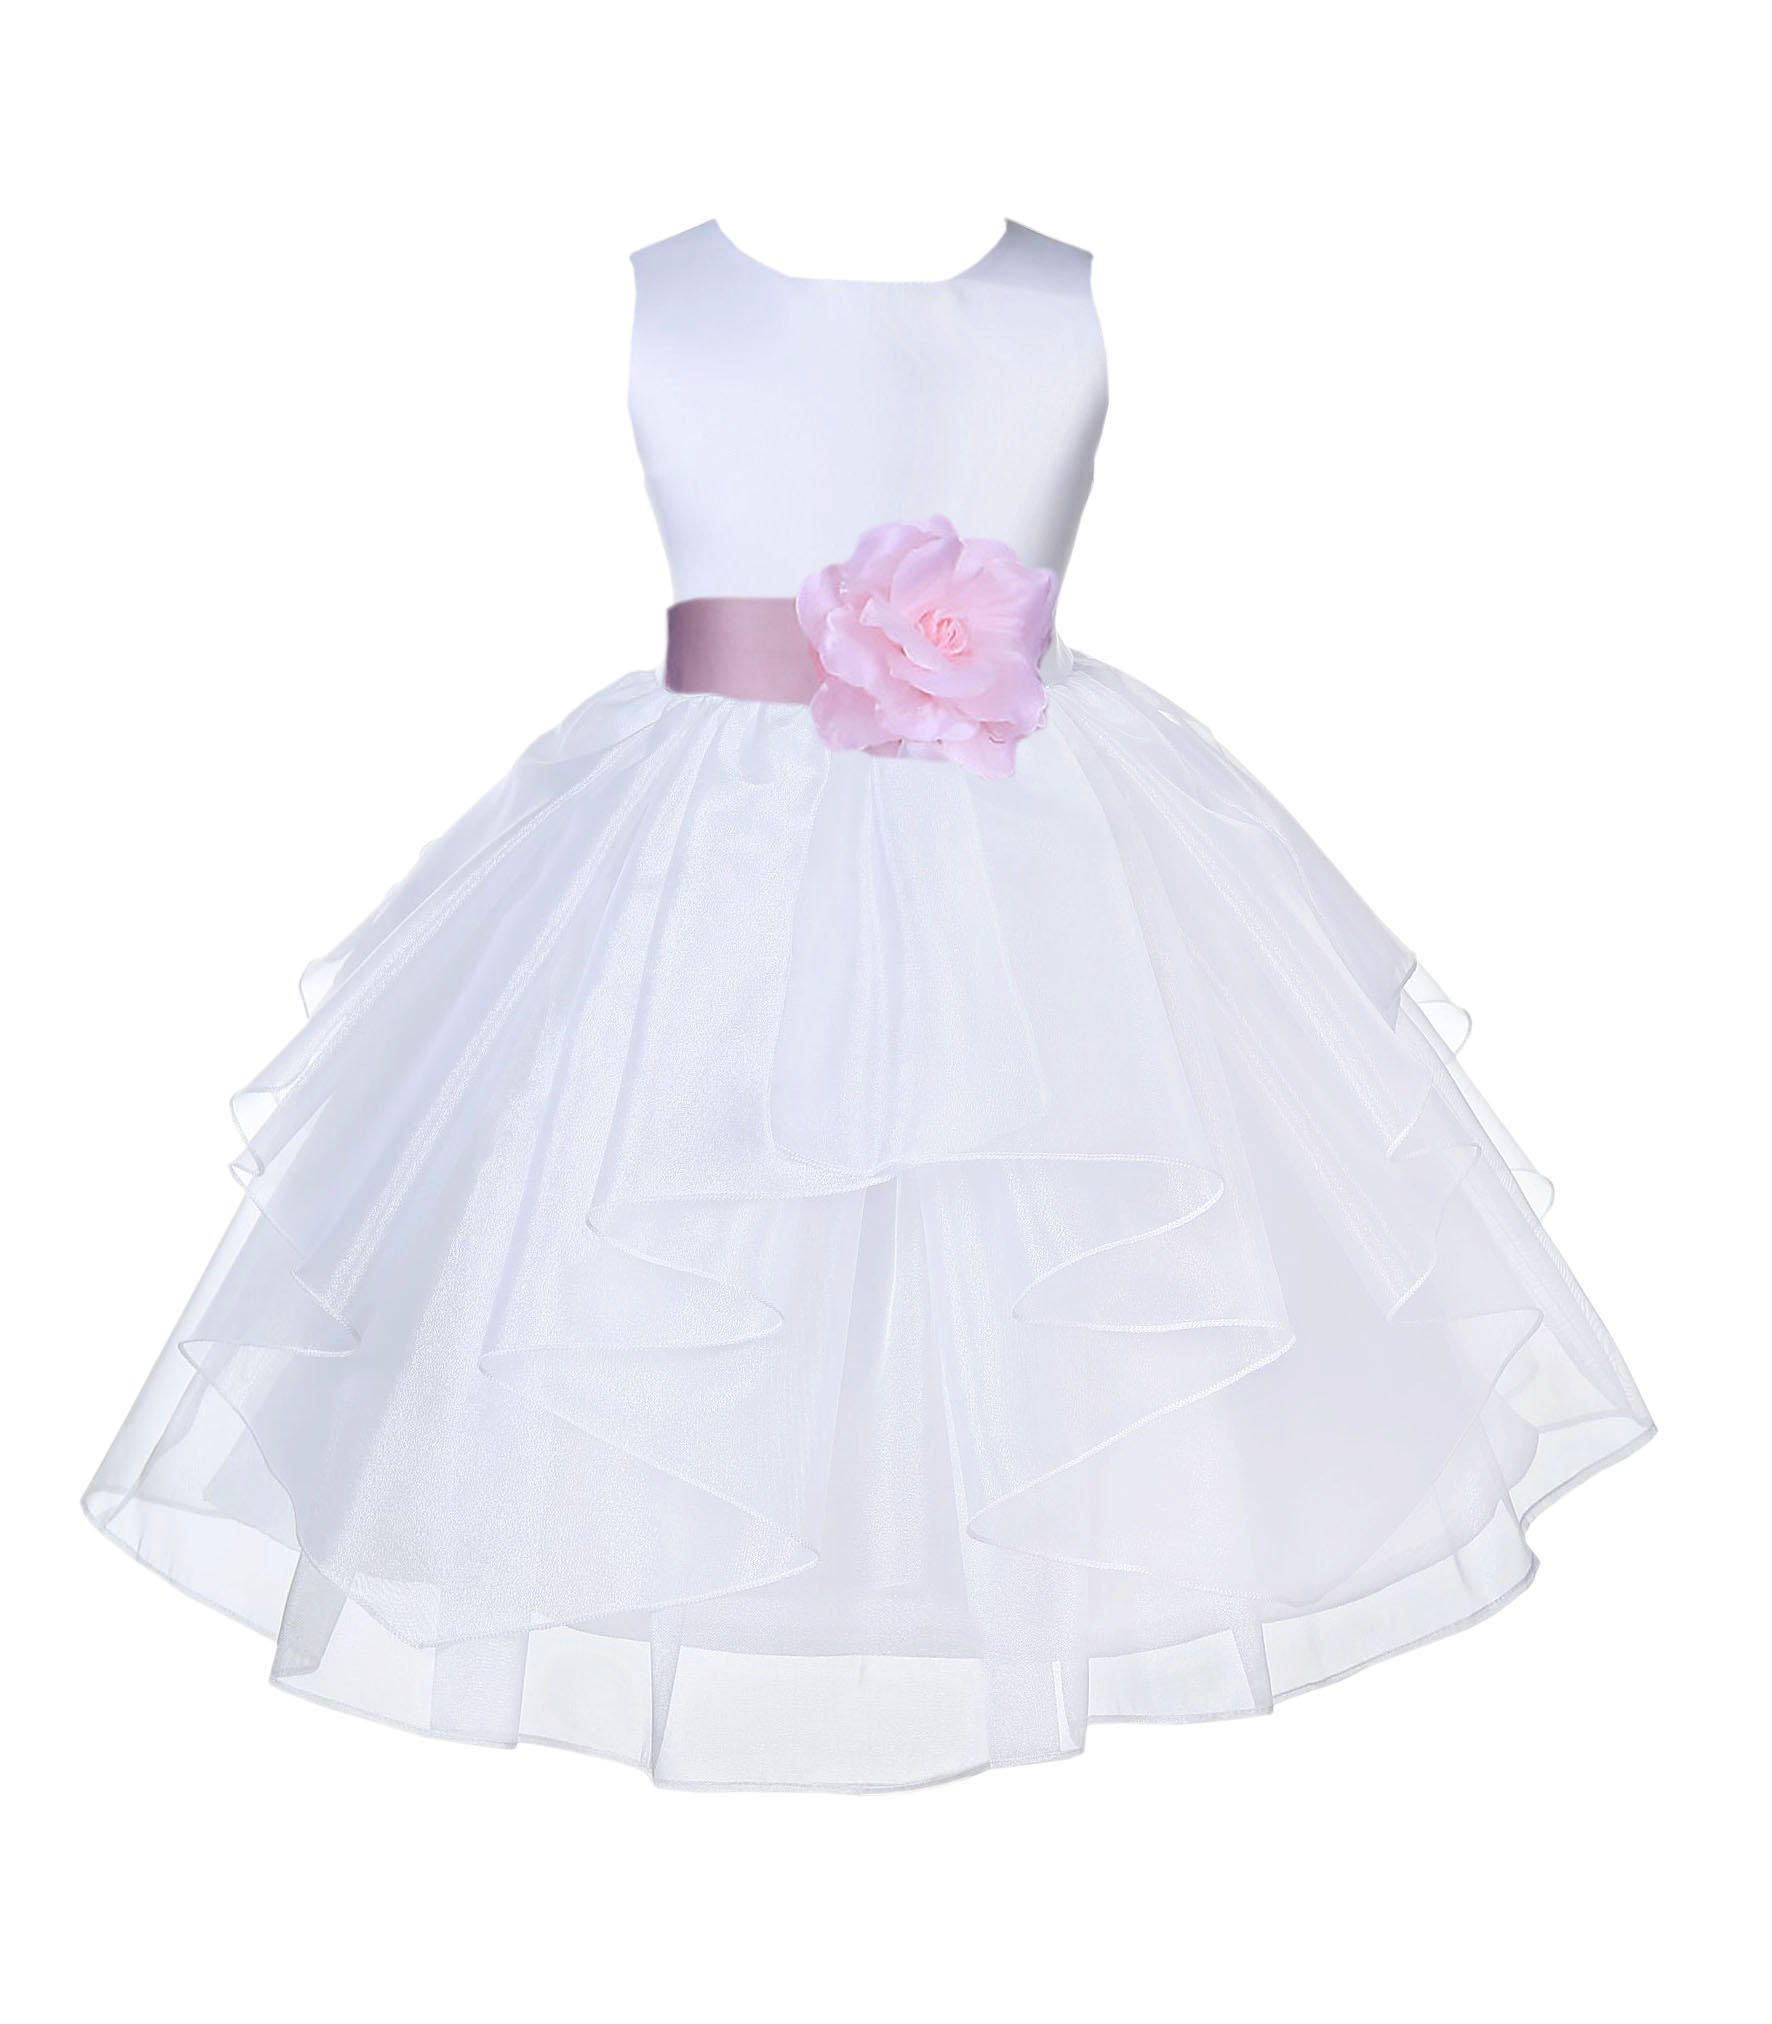 New Baby Flower Girls White Satin Organza Dress Pageant Easter Party Wedding